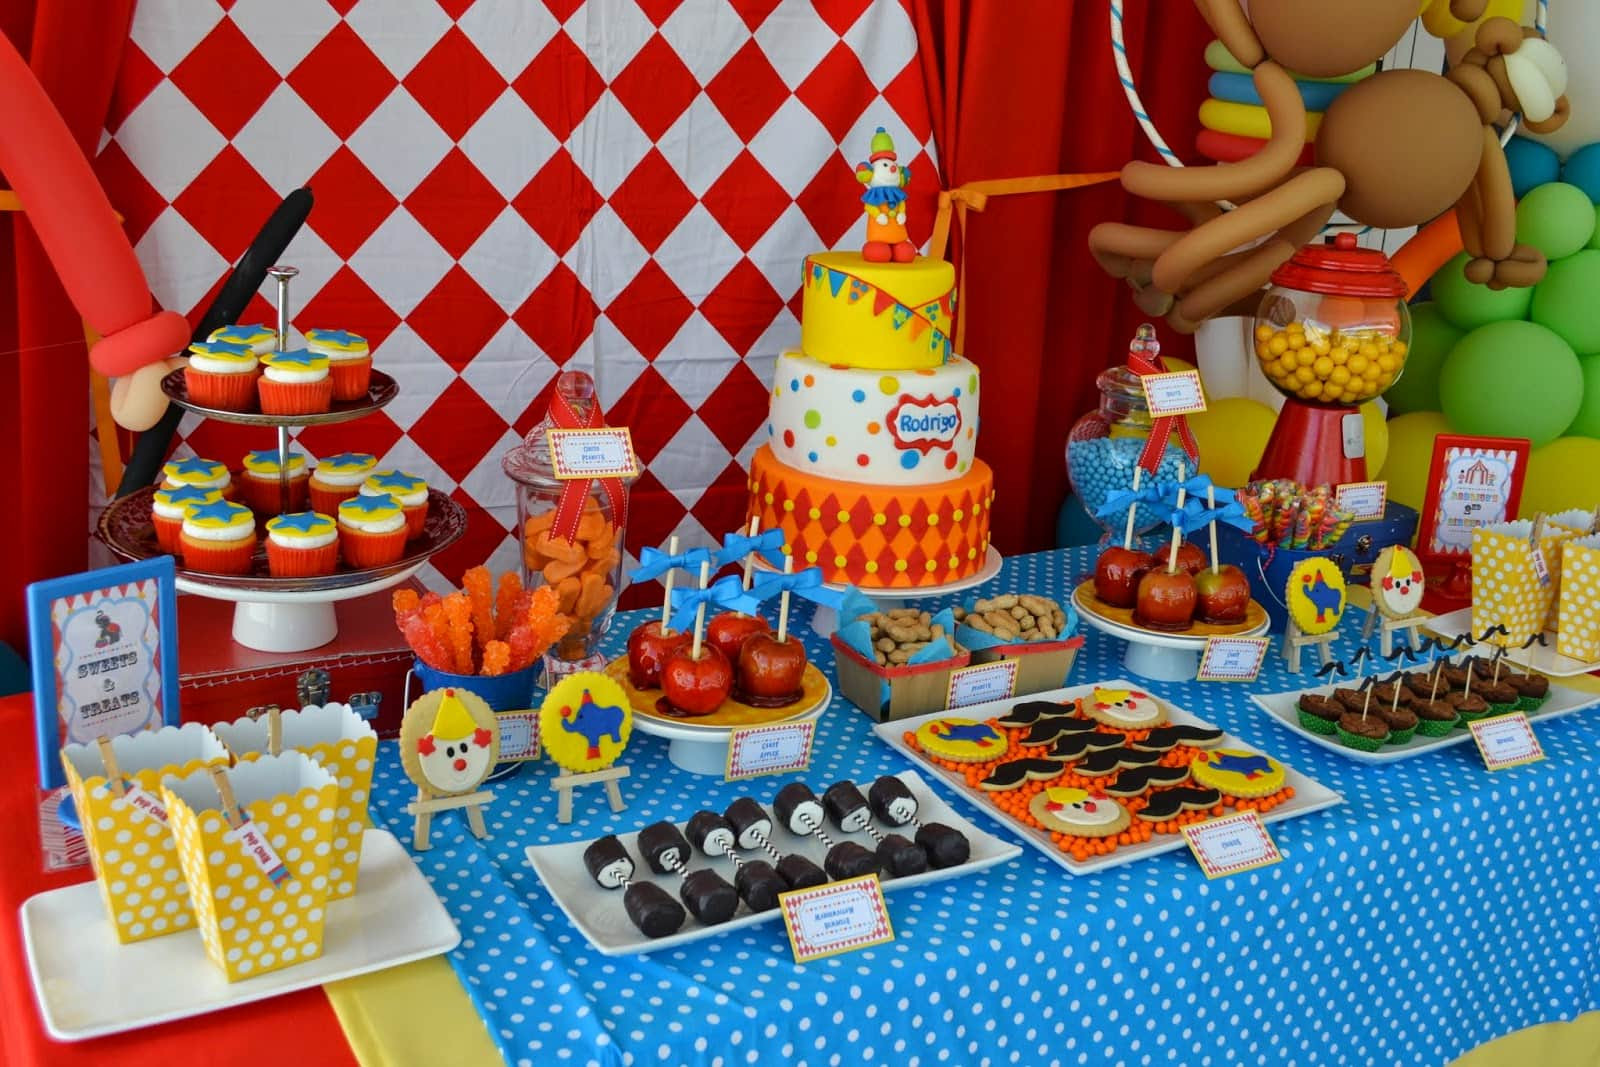 Best ideas about Birthday Party Ideas For Boys . Save or Pin 33 Awesome Birthday Party Ideas for Boys Now.